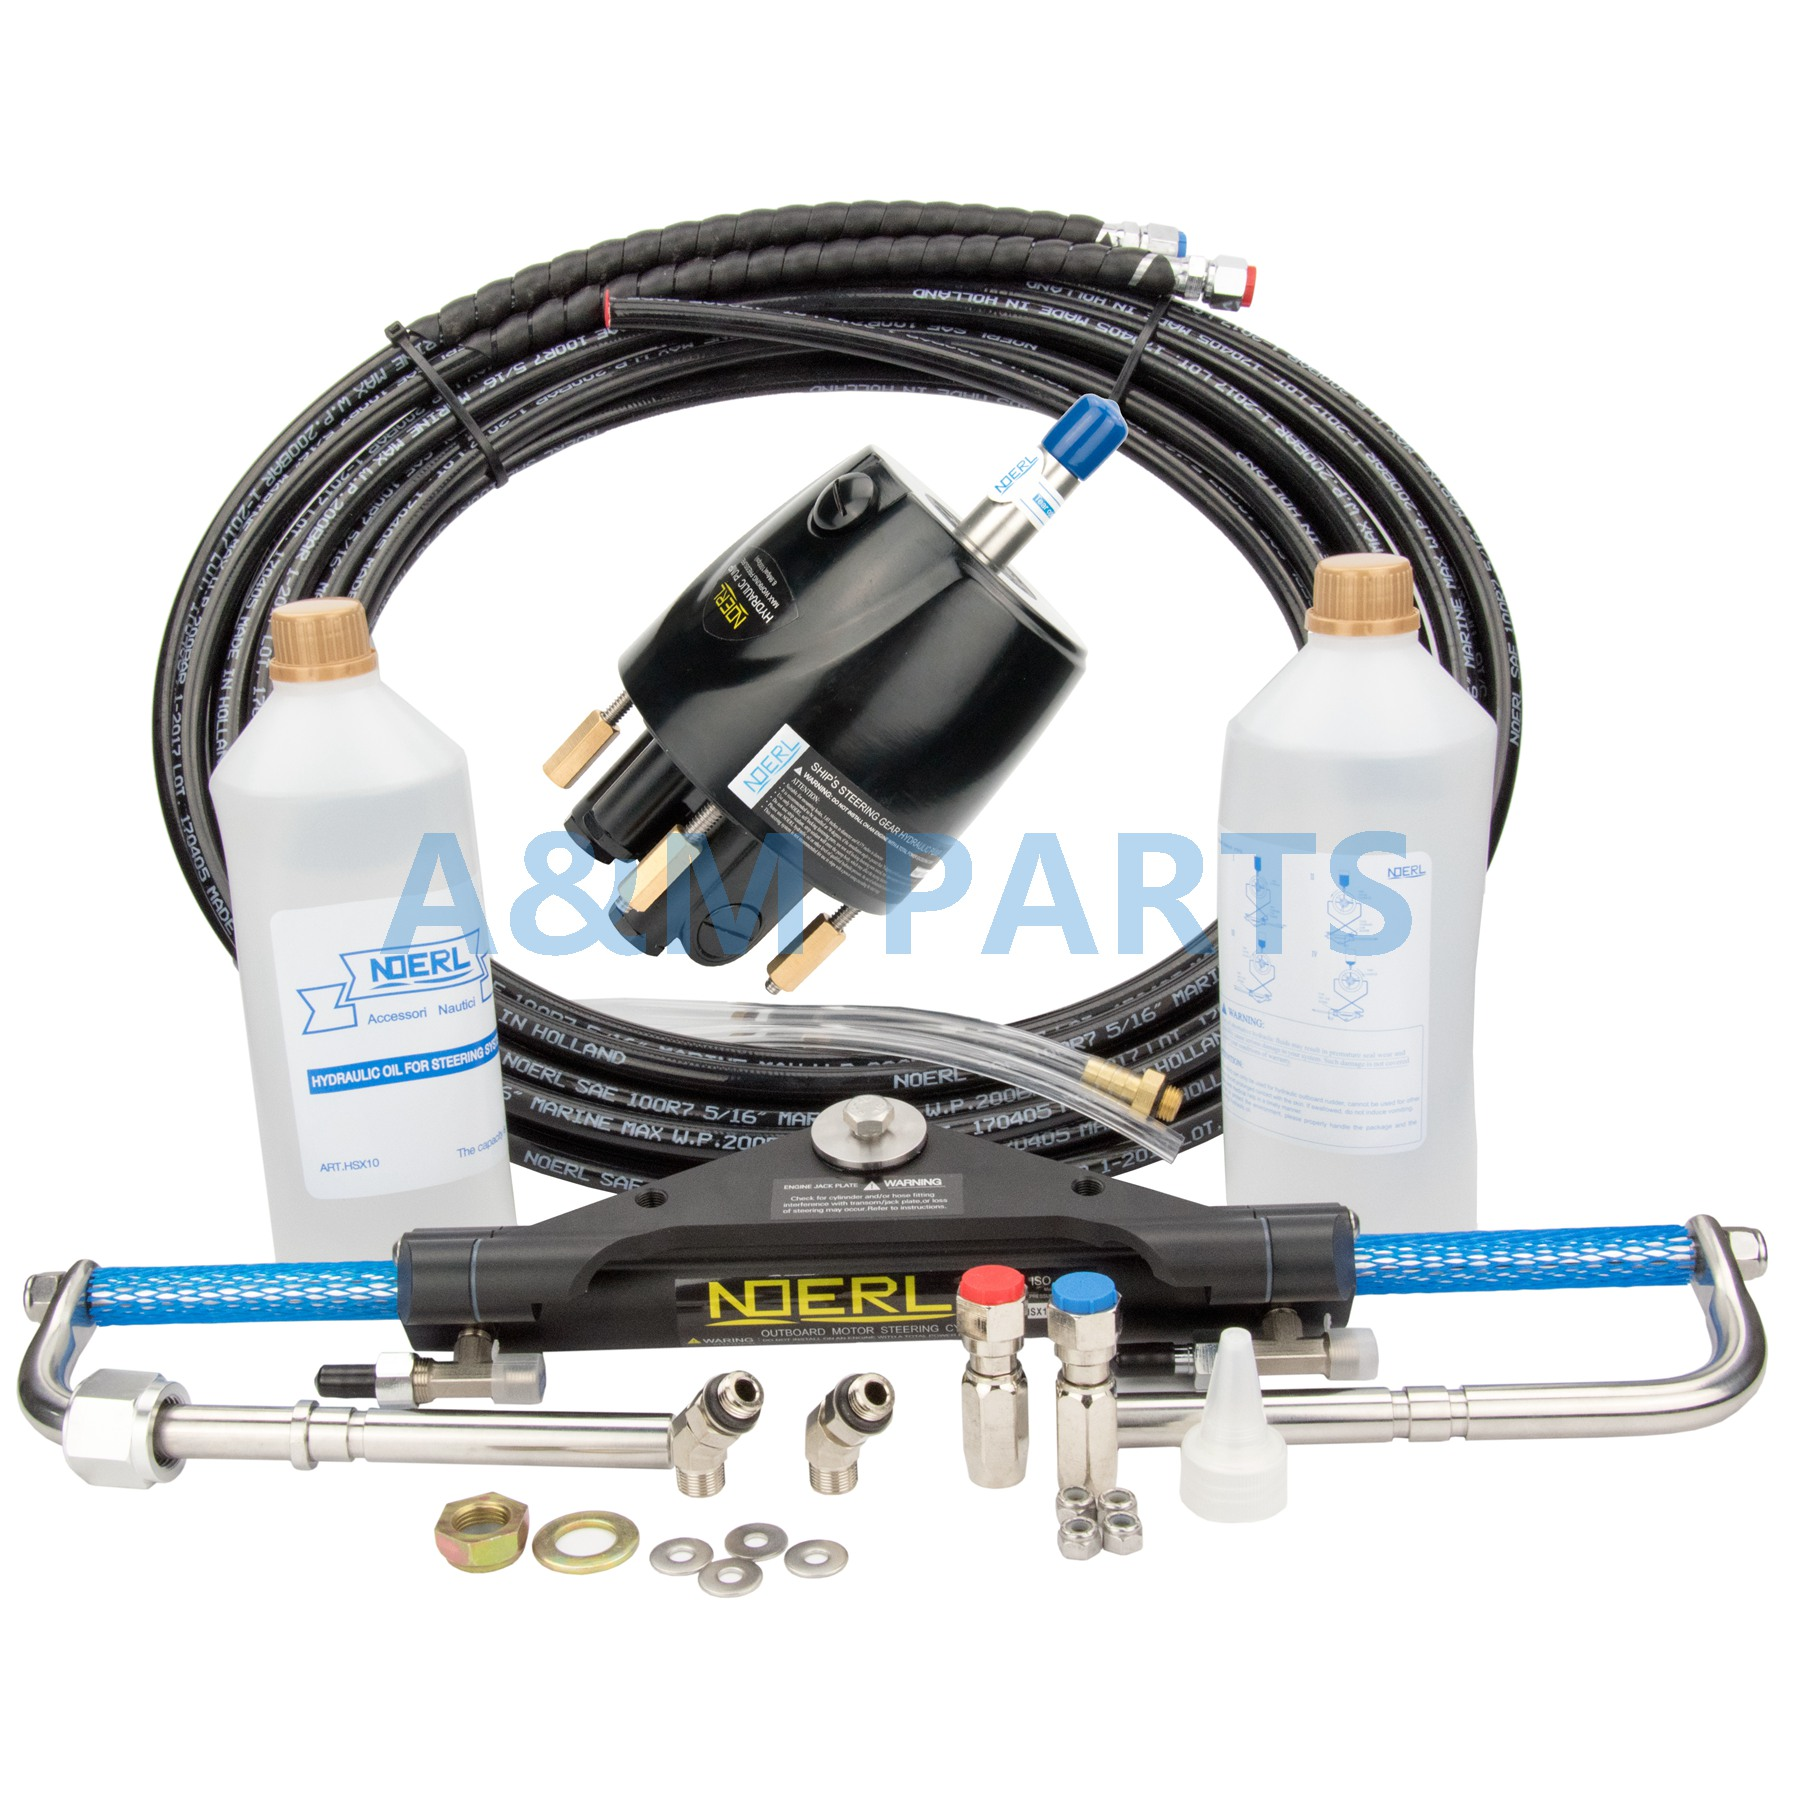 Boat Marine Hydraulic Outboard Steering System Kit Cylinder Helm 150HP